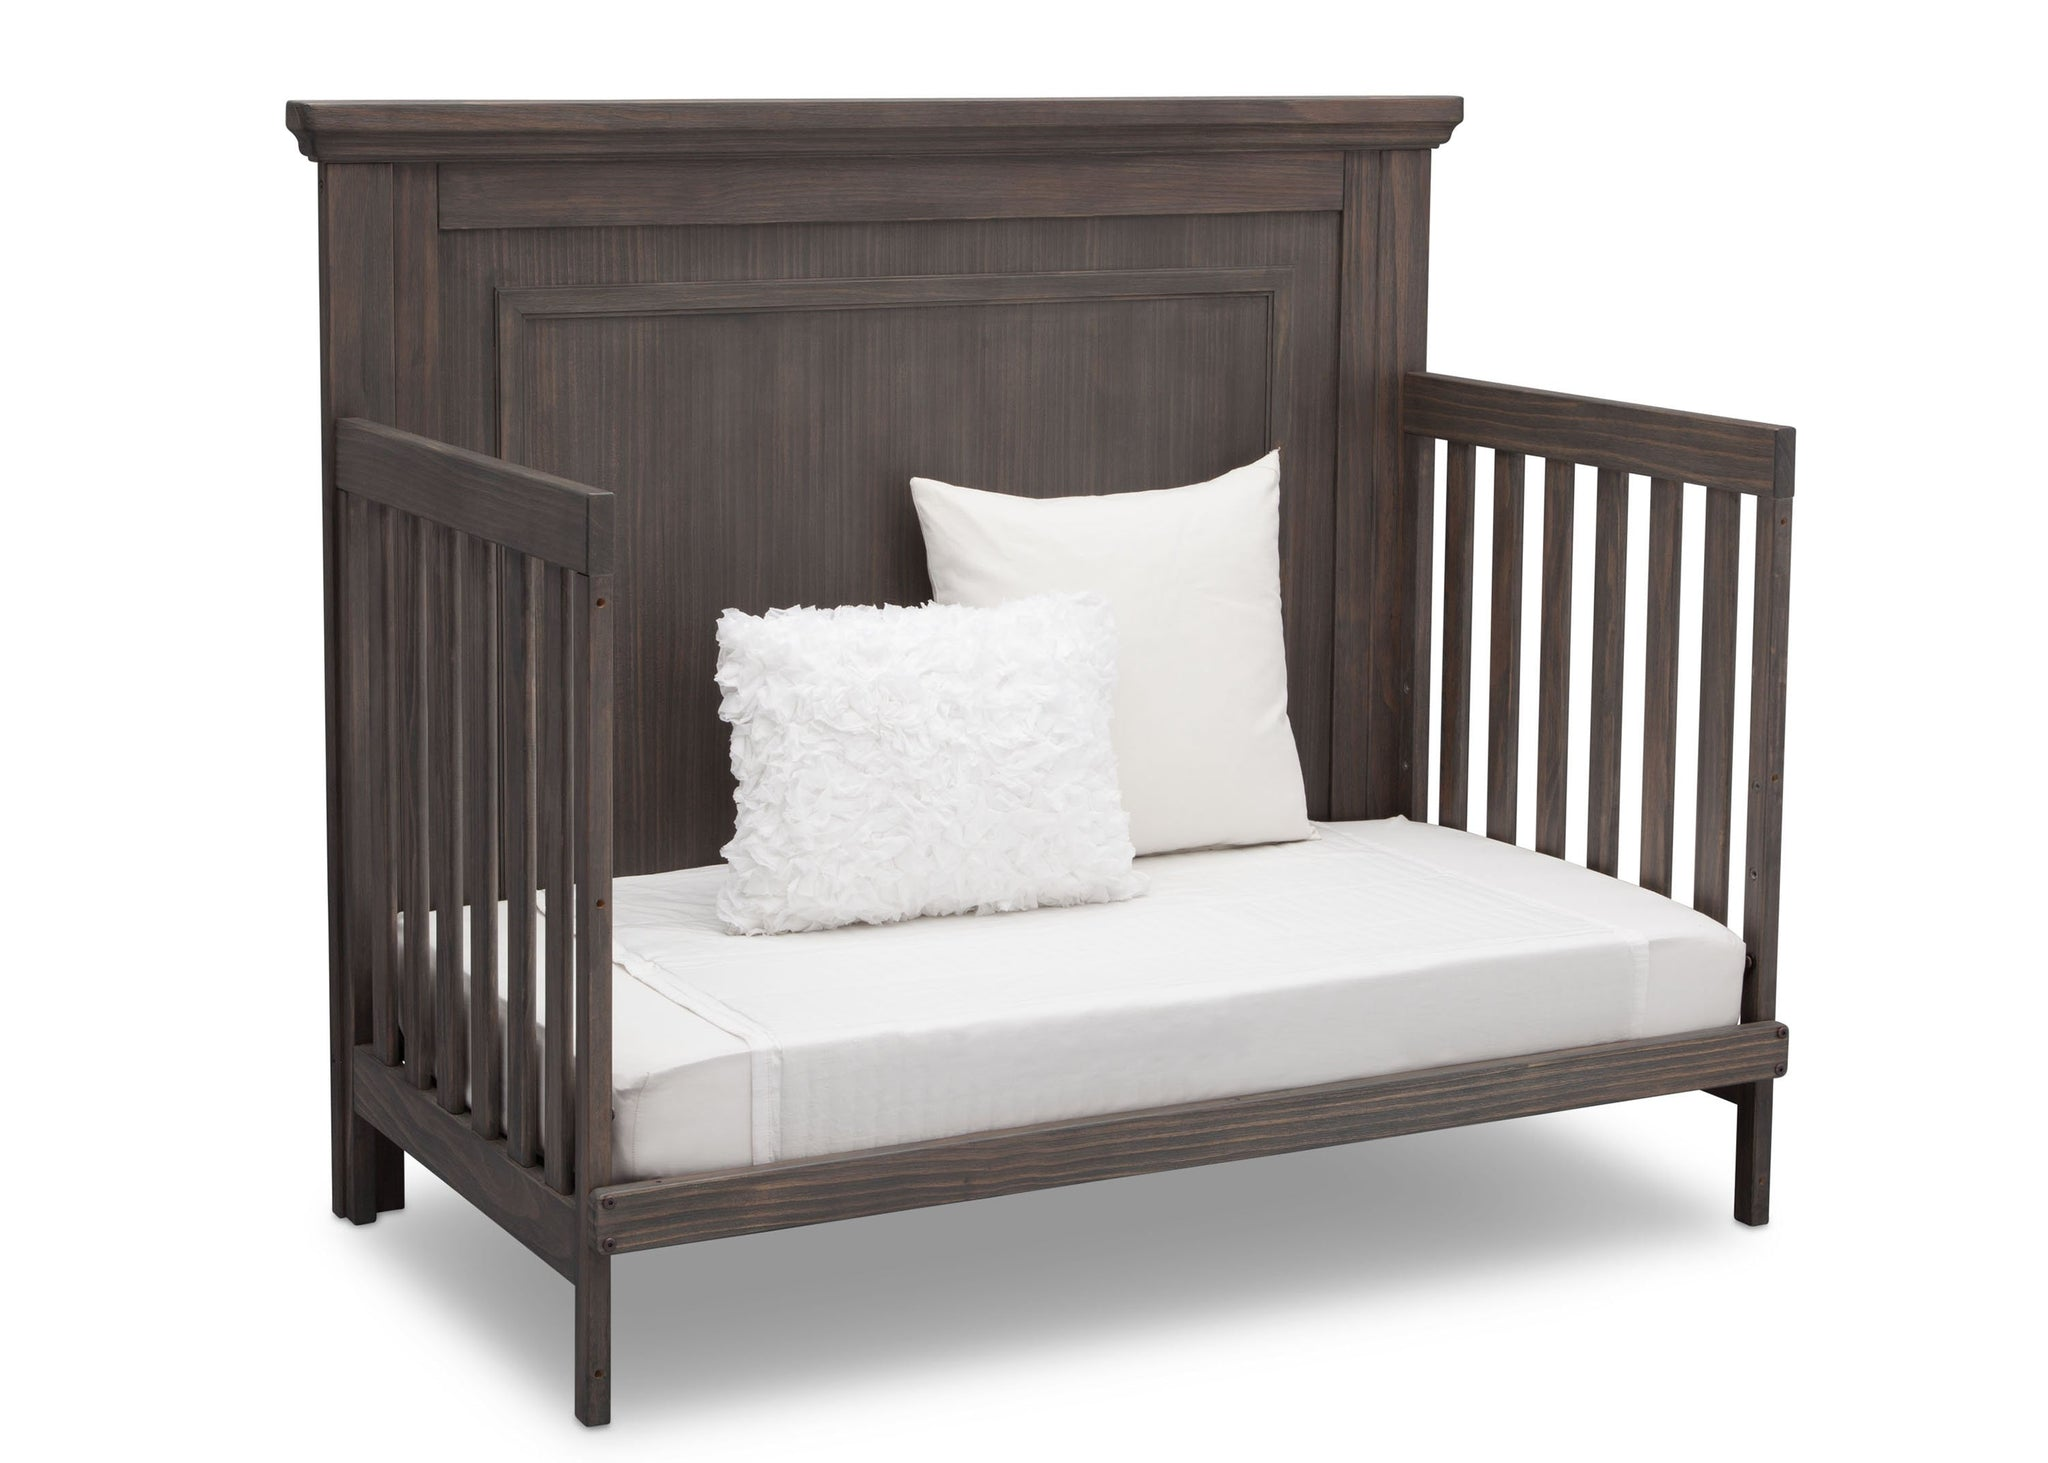 Simmons Rustic Grey (084) Paloma 4-in-1 Convertible Crib (328150), Silo Daybed, a5a